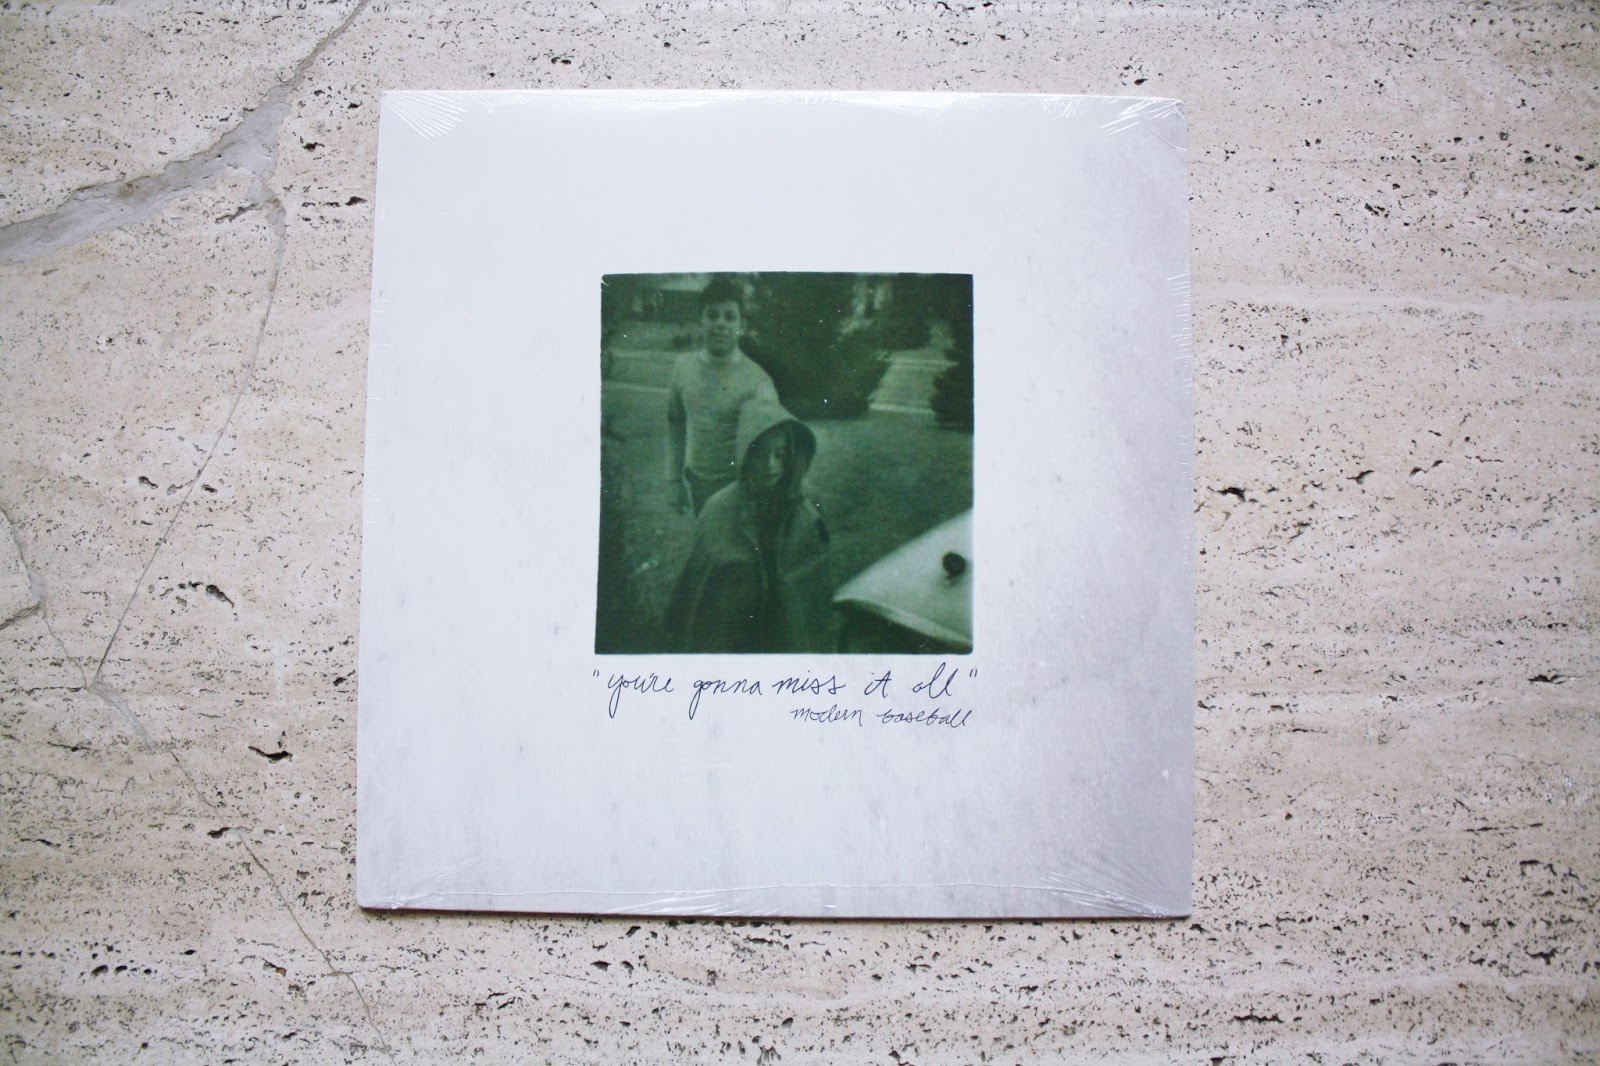 Modern Baseball You're Gonna Miss It All vinyl